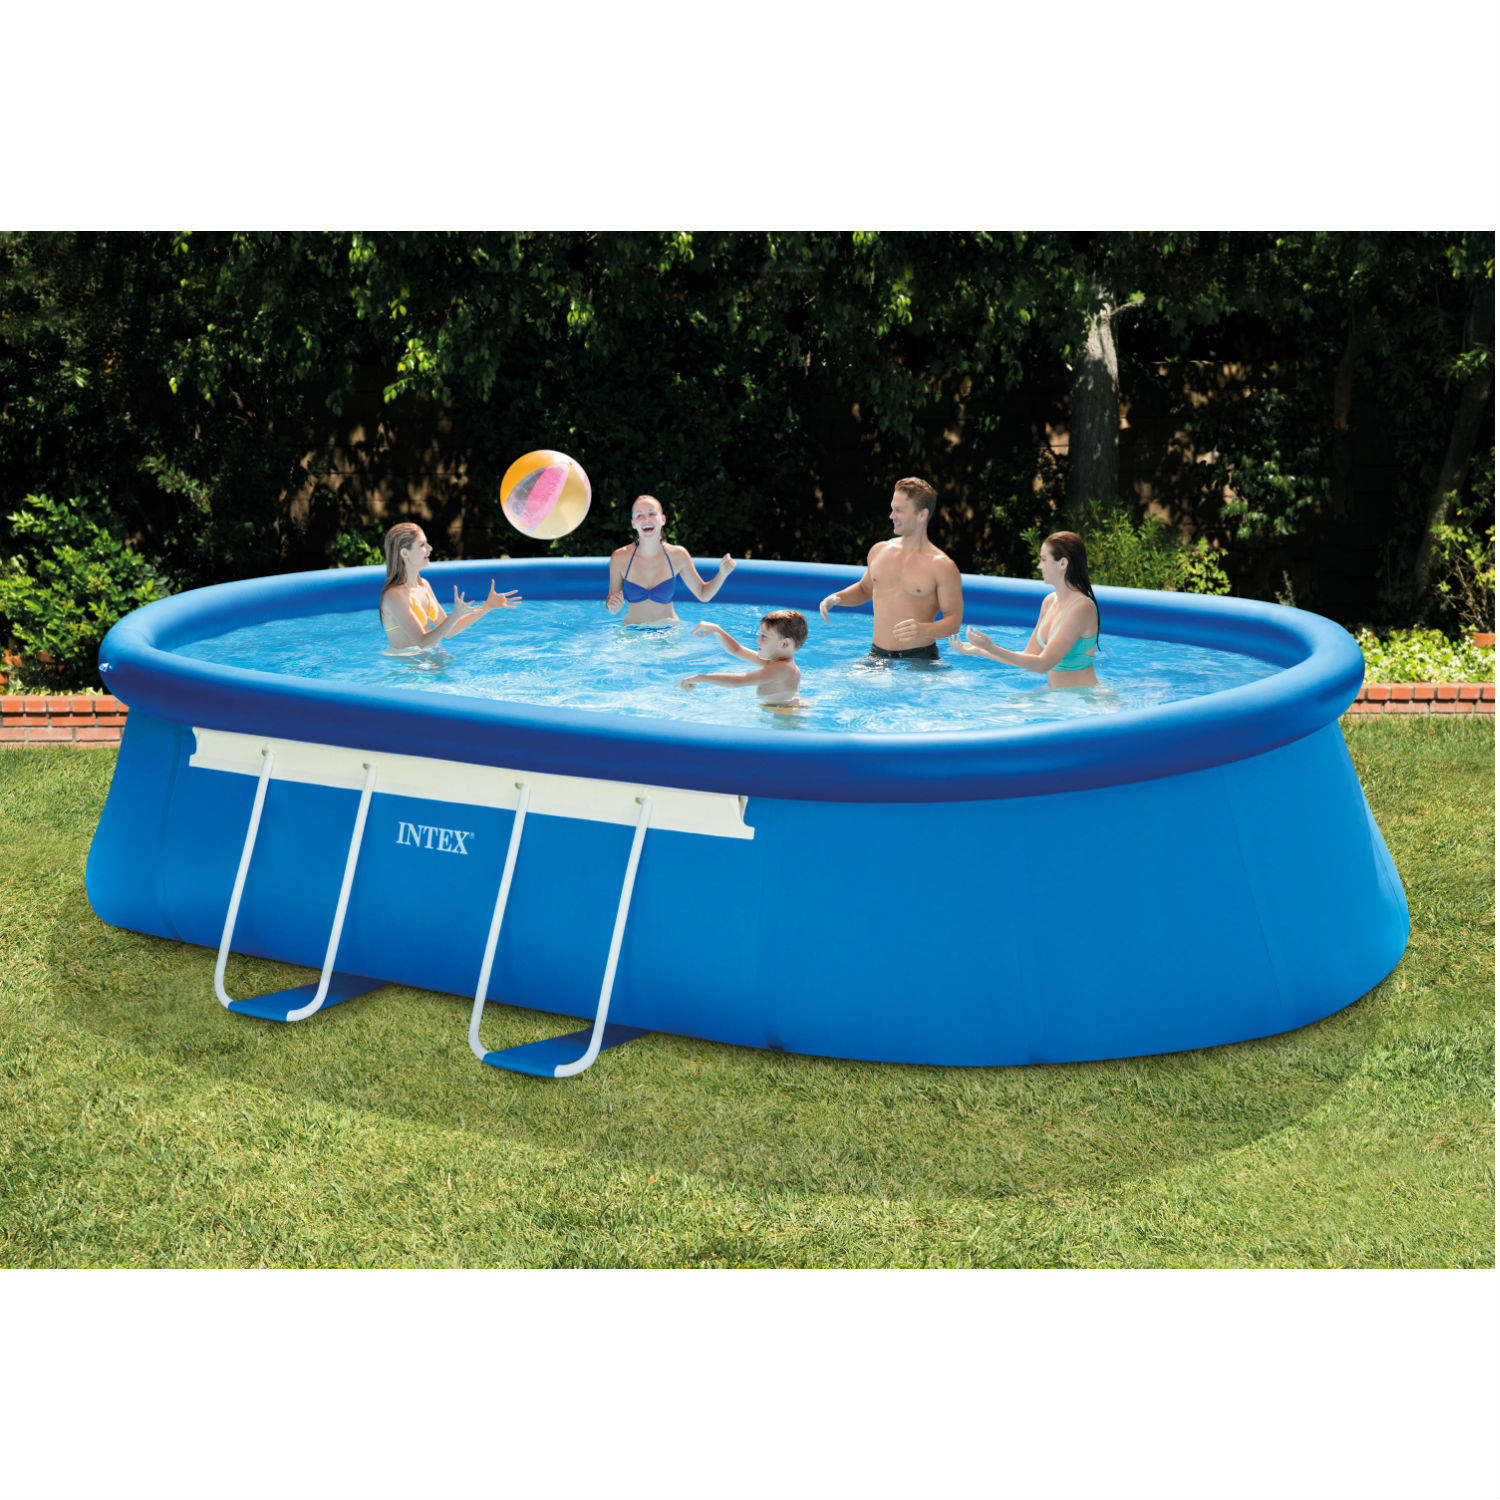 Above Ground Inflatable Pools swimming pools - walmart